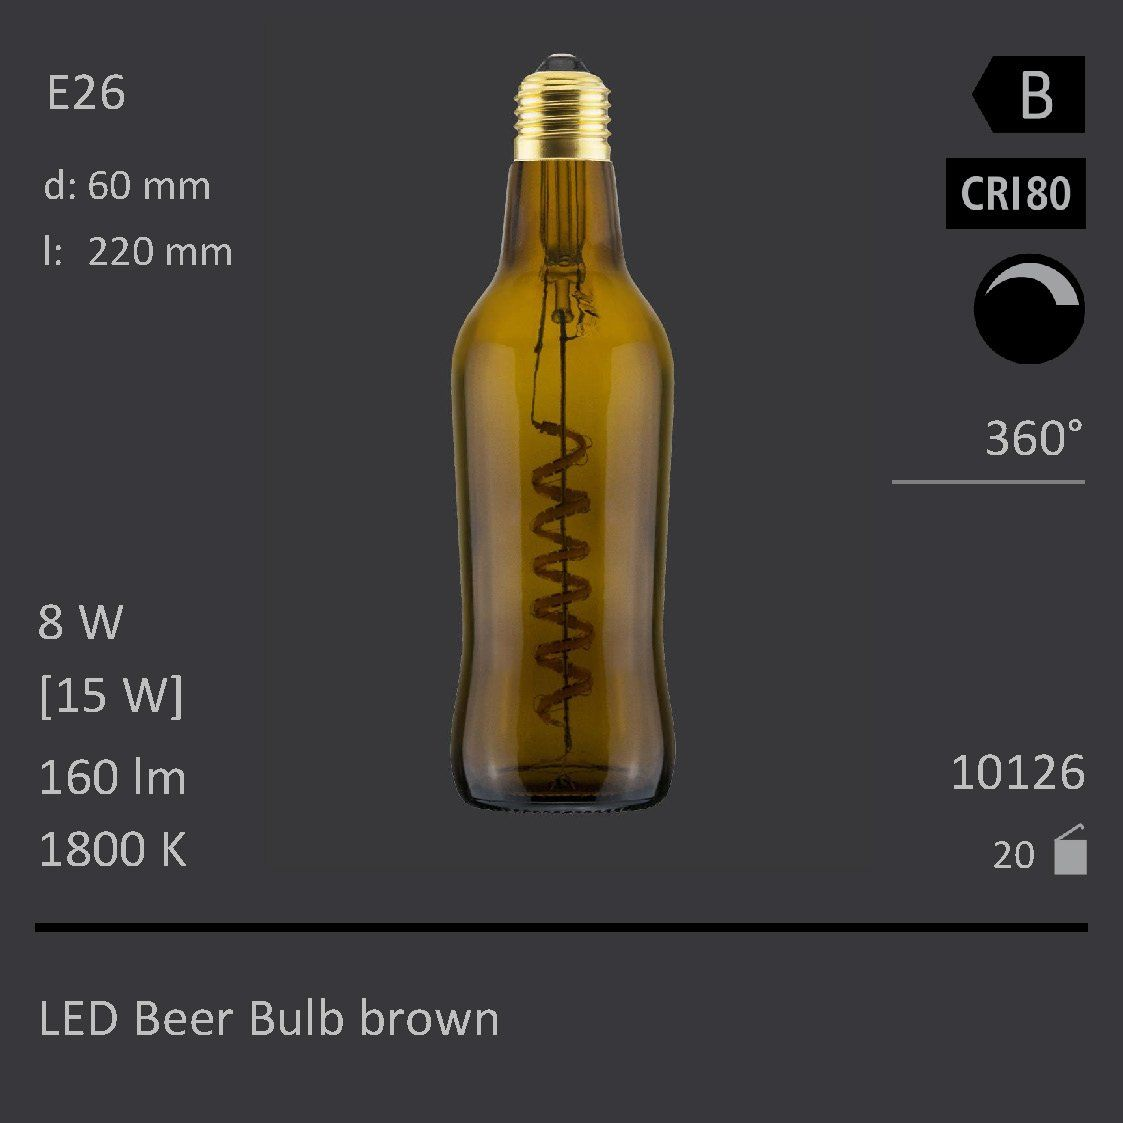 Lightbulb Lights Led Beer Bottle Light Bulb Brown Dimmable Usa Socket Have A